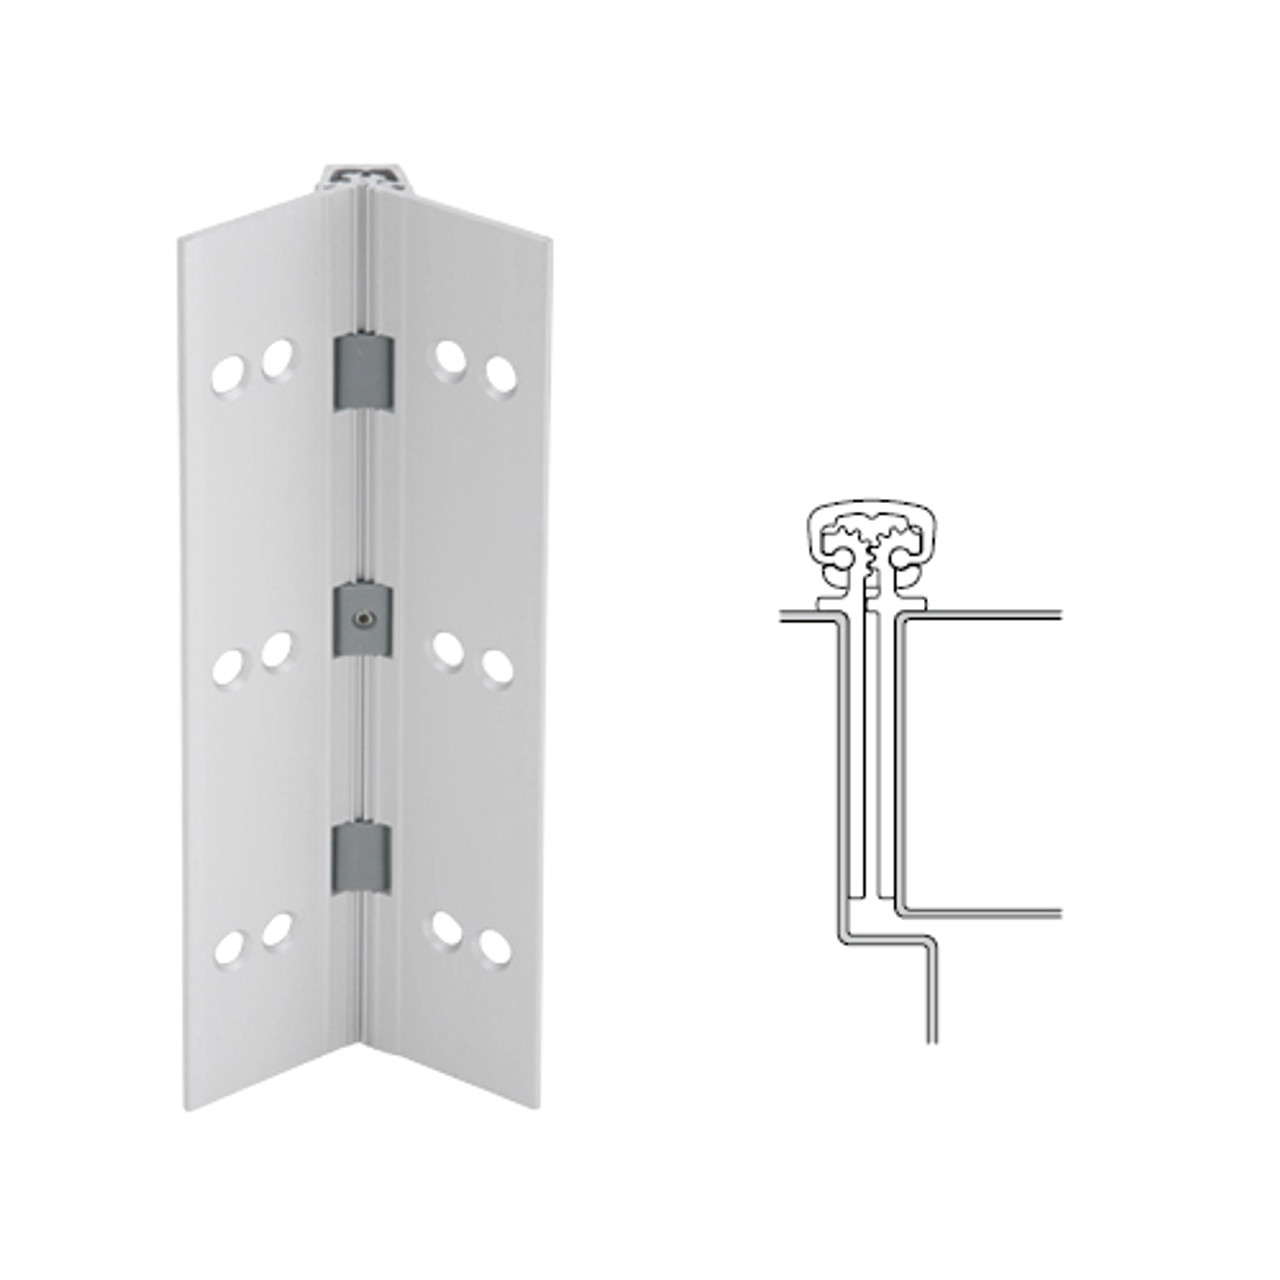 027XY-US28-95-SECWDWD IVES Full Mortise Continuous Geared Hinges with Security Screws - Hex Pin Drive in Satin Aluminum